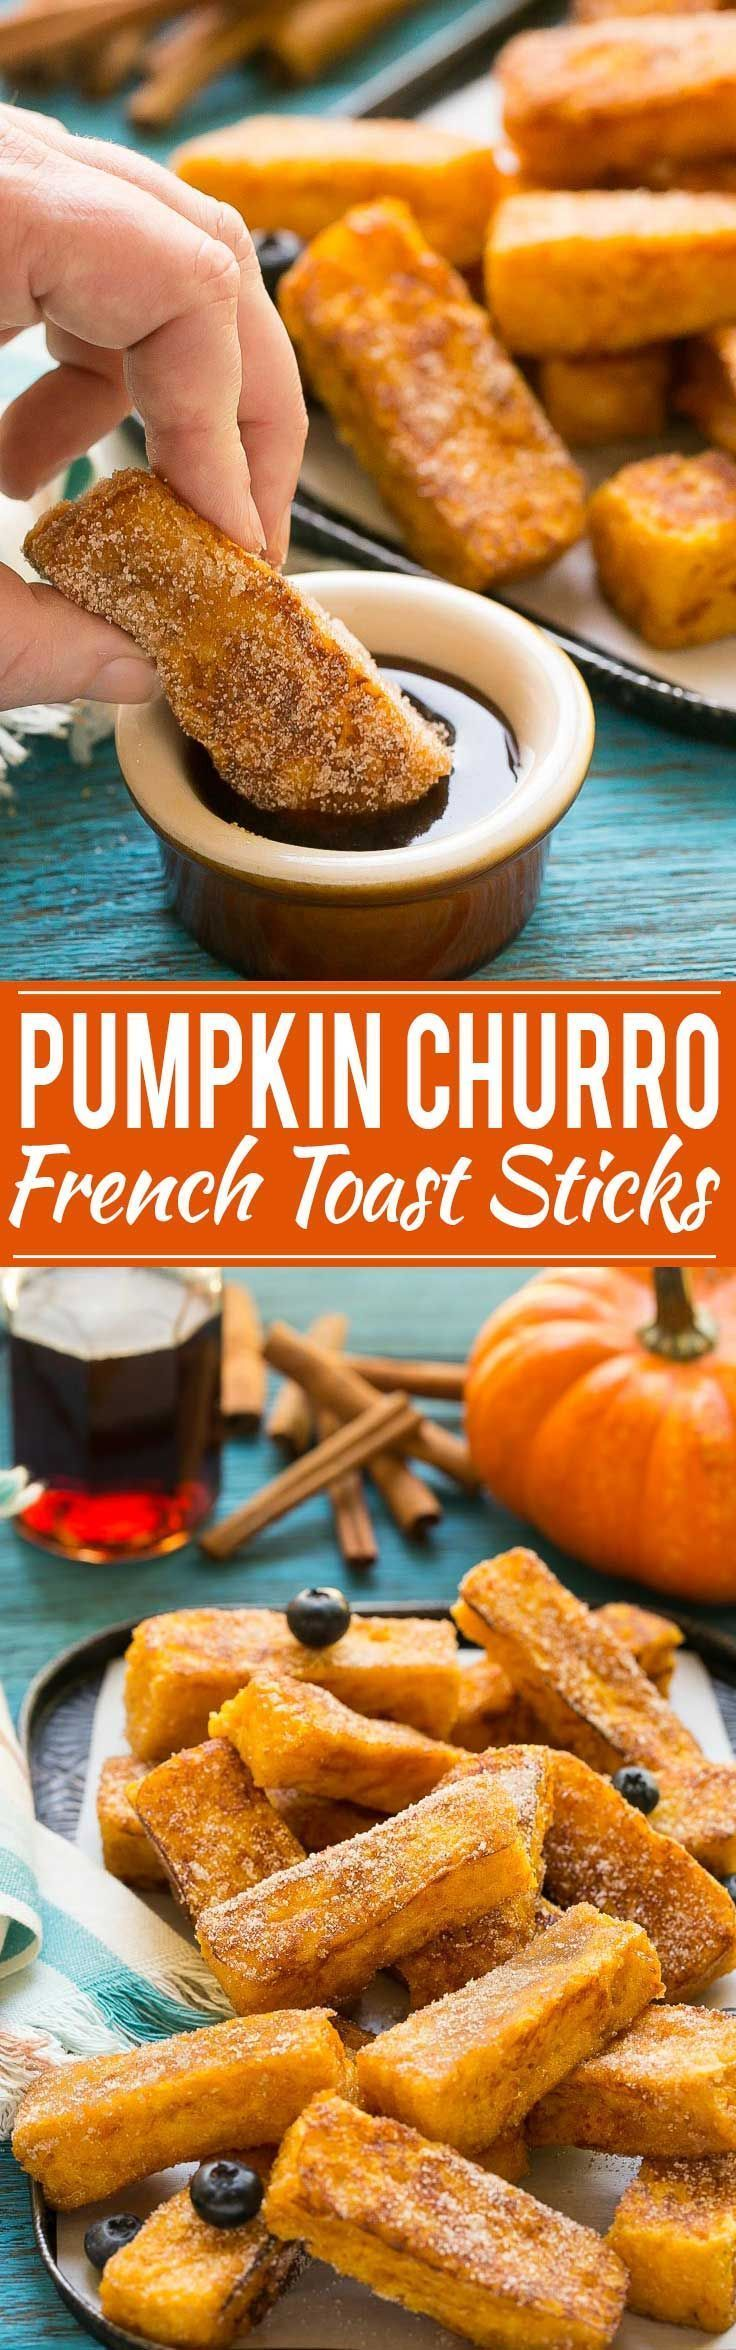 Light and fluffy pumpkin french toast sticks coated in cinnamon sugar. They're super fun to eat and they taste like a churro! and fluffy pumpkin french toast sticks coated in cinnamon sugar. They're super fun to eat and they taste like a churro!